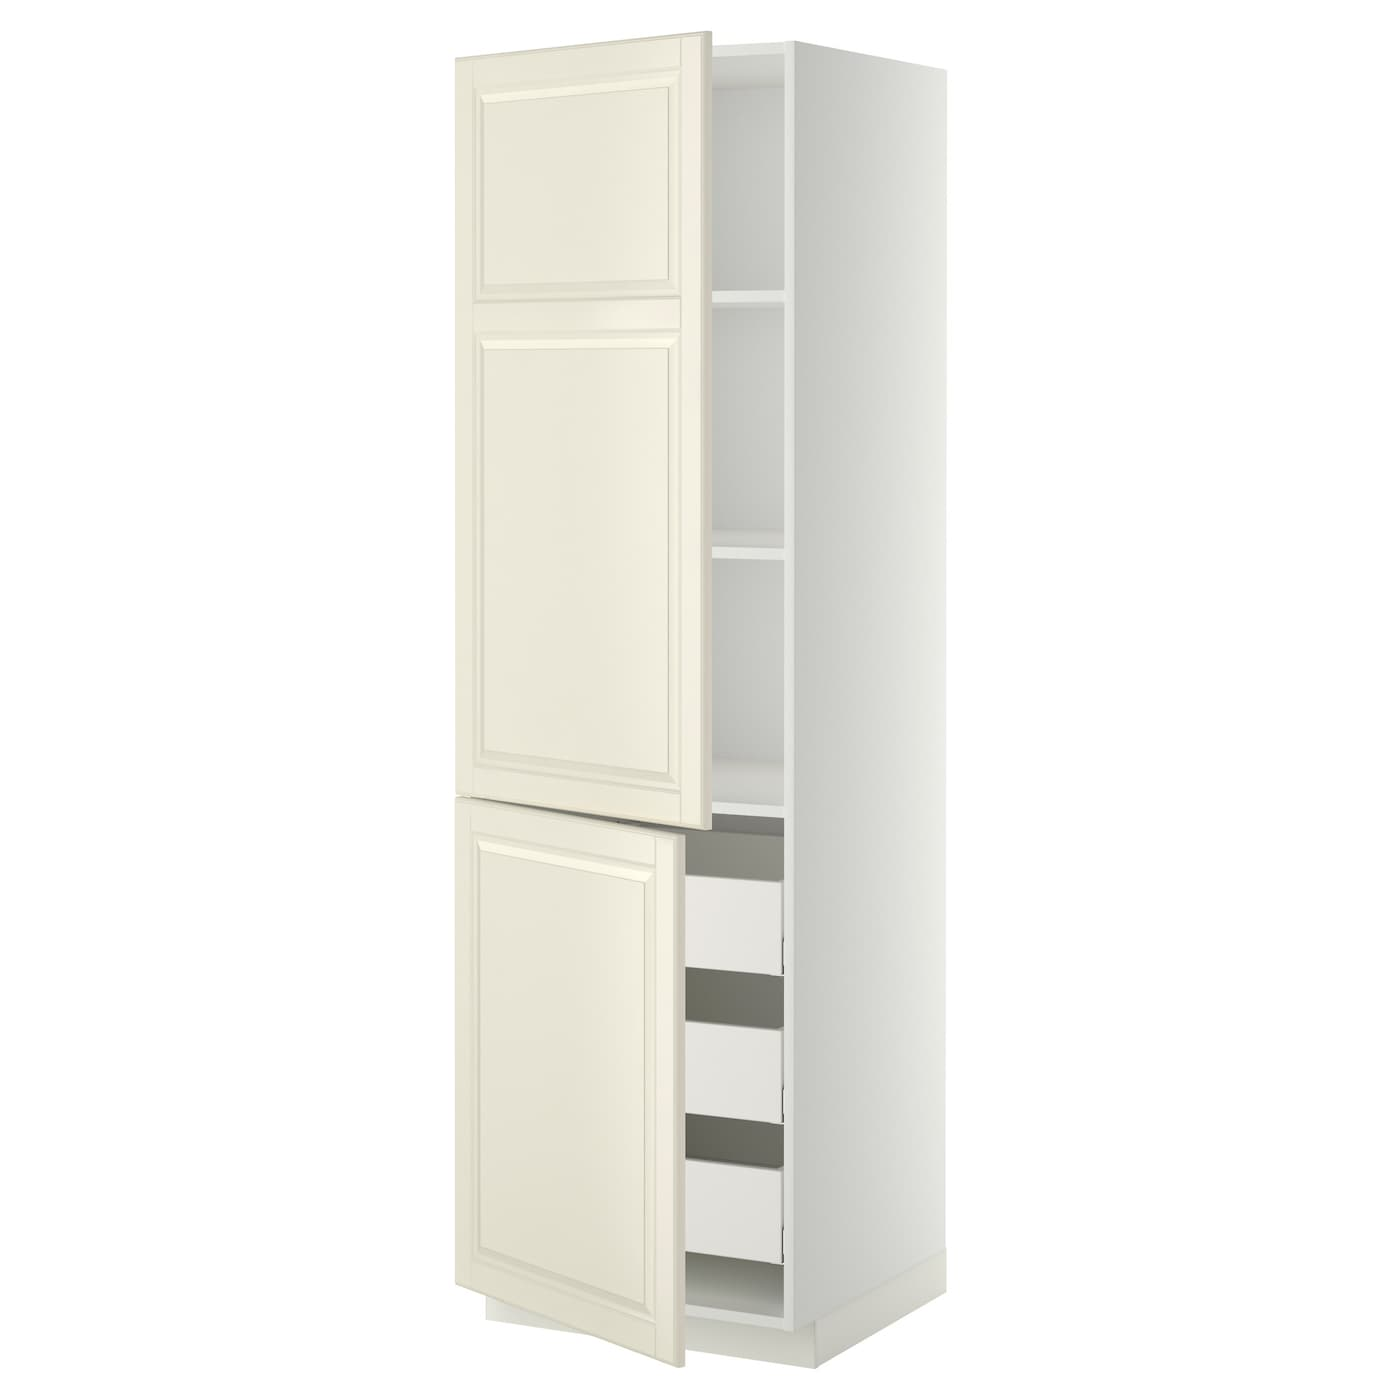 Tall kitchen cabinets kitchen units ikea - Mobile alto e stretto ikea ...